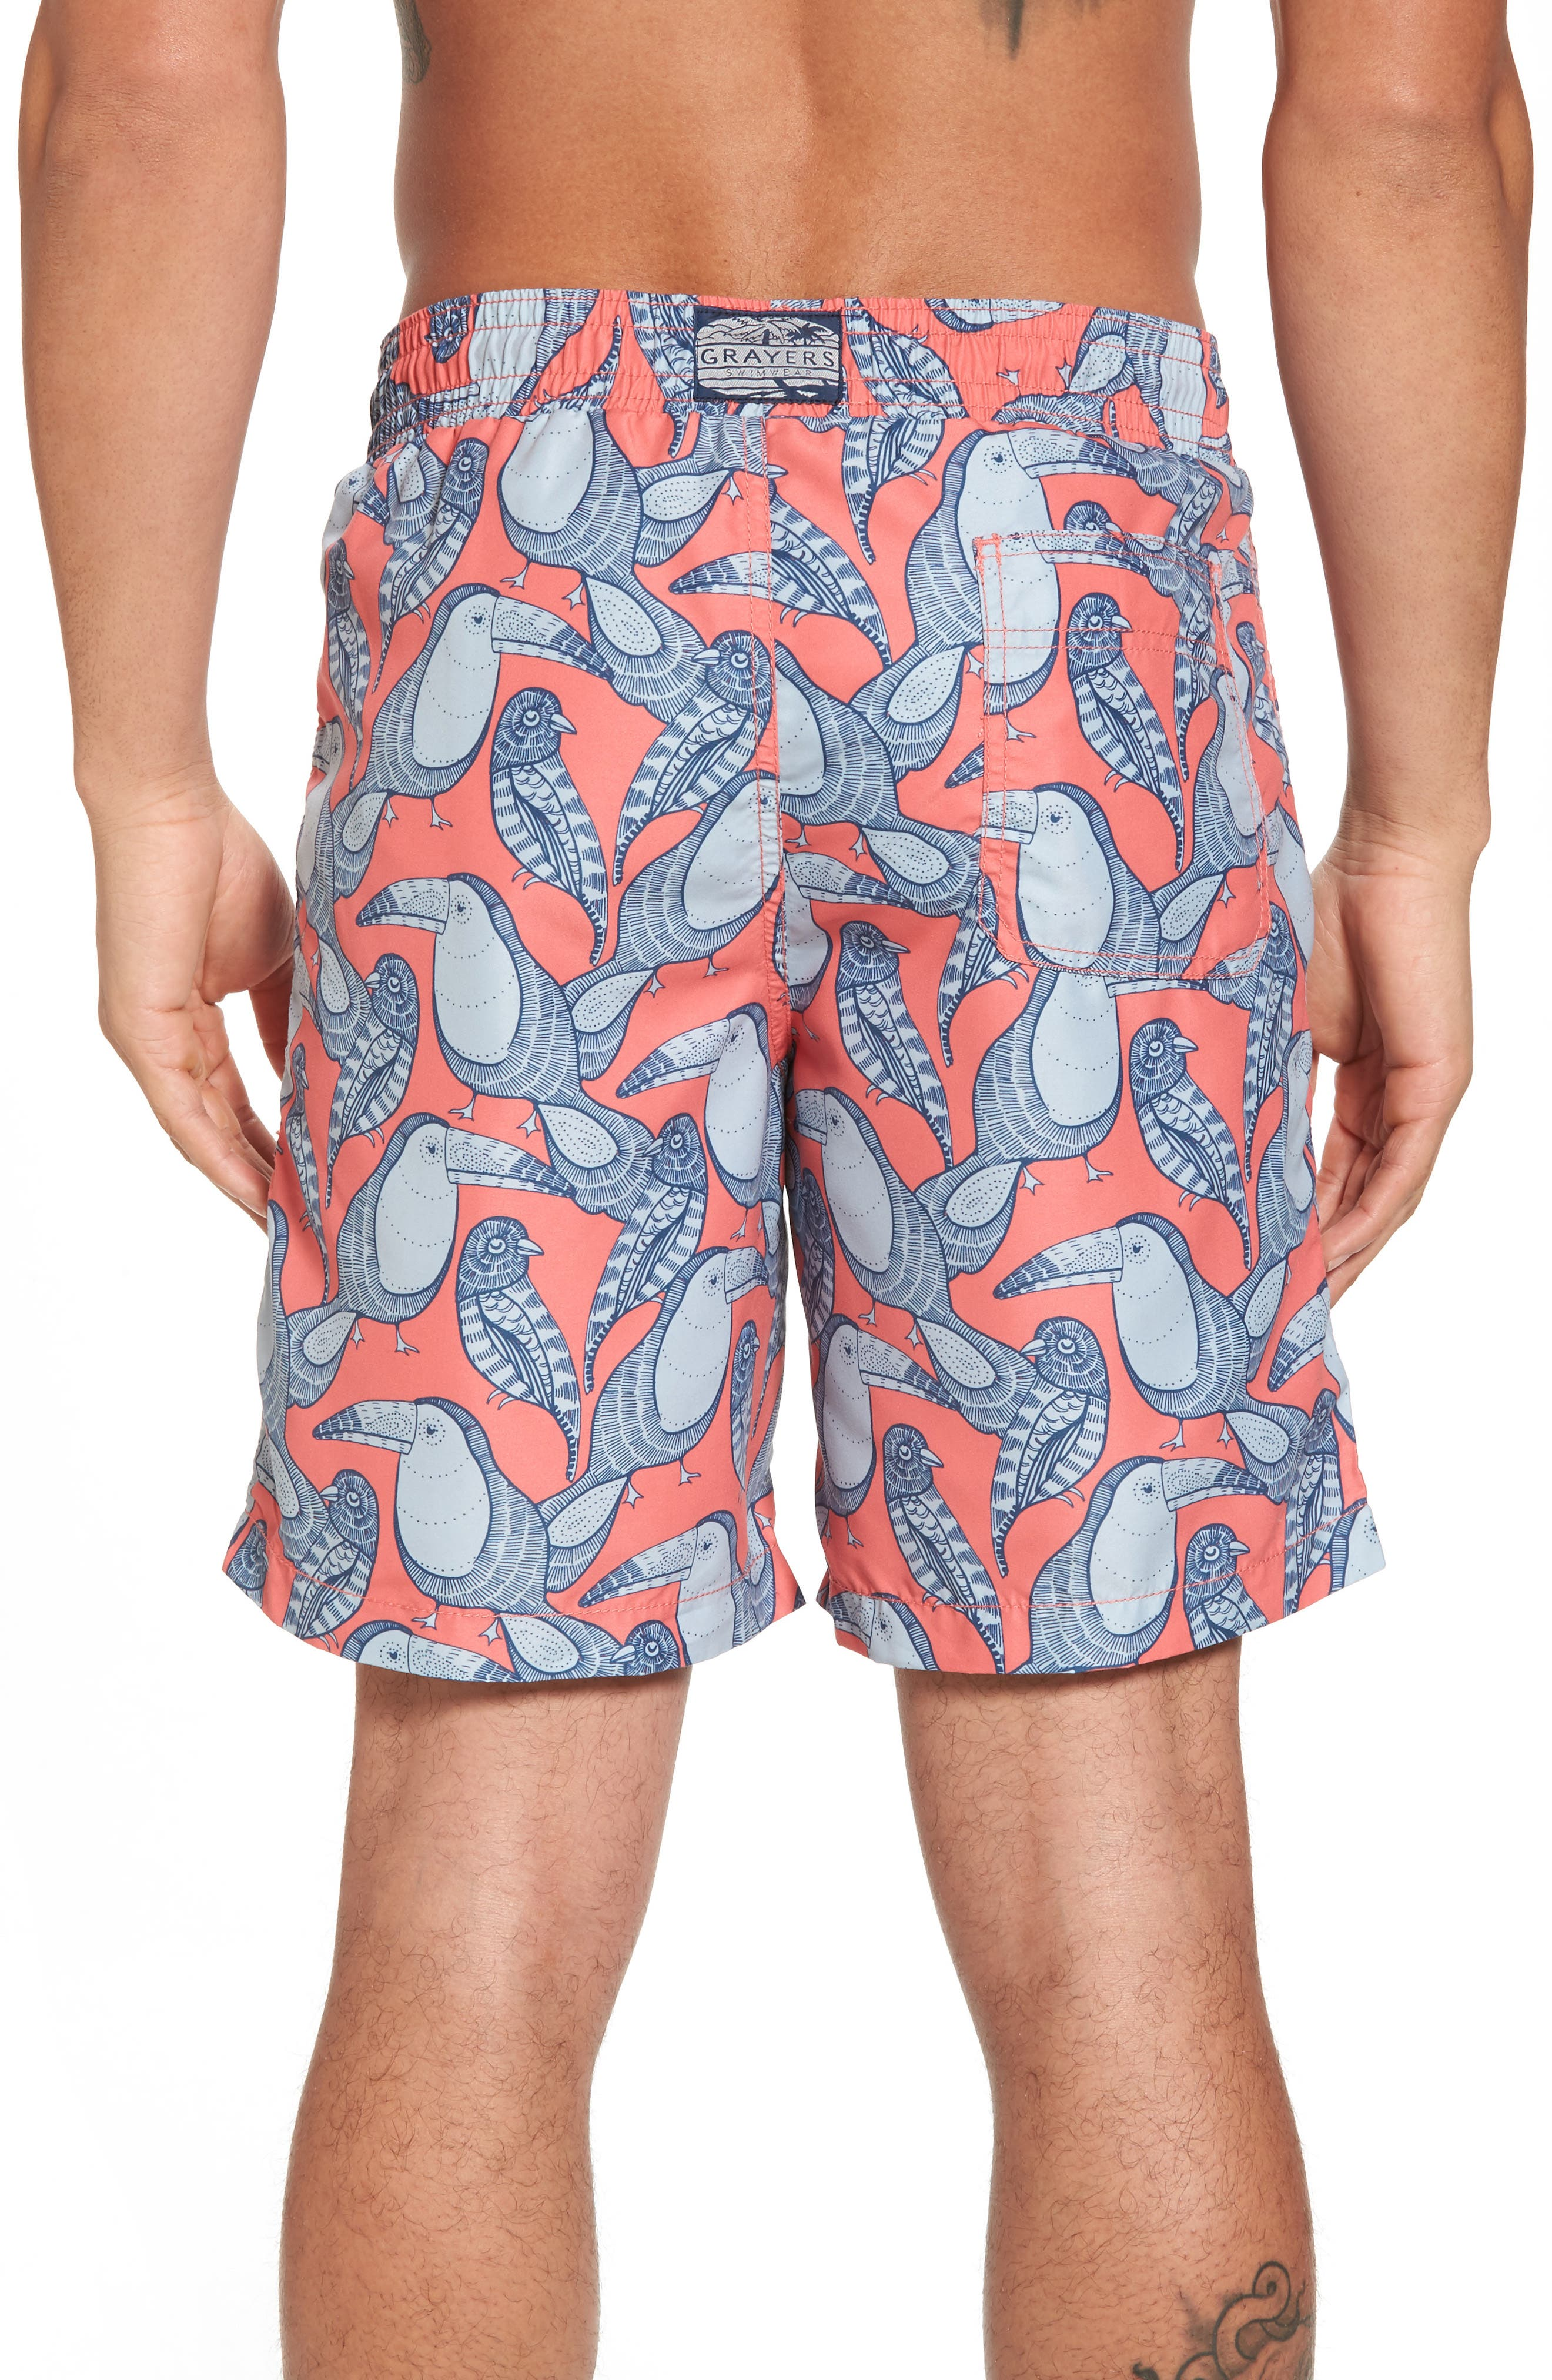 Toucan Swim Trunks,                             Alternate thumbnail 2, color,                             Red Blue